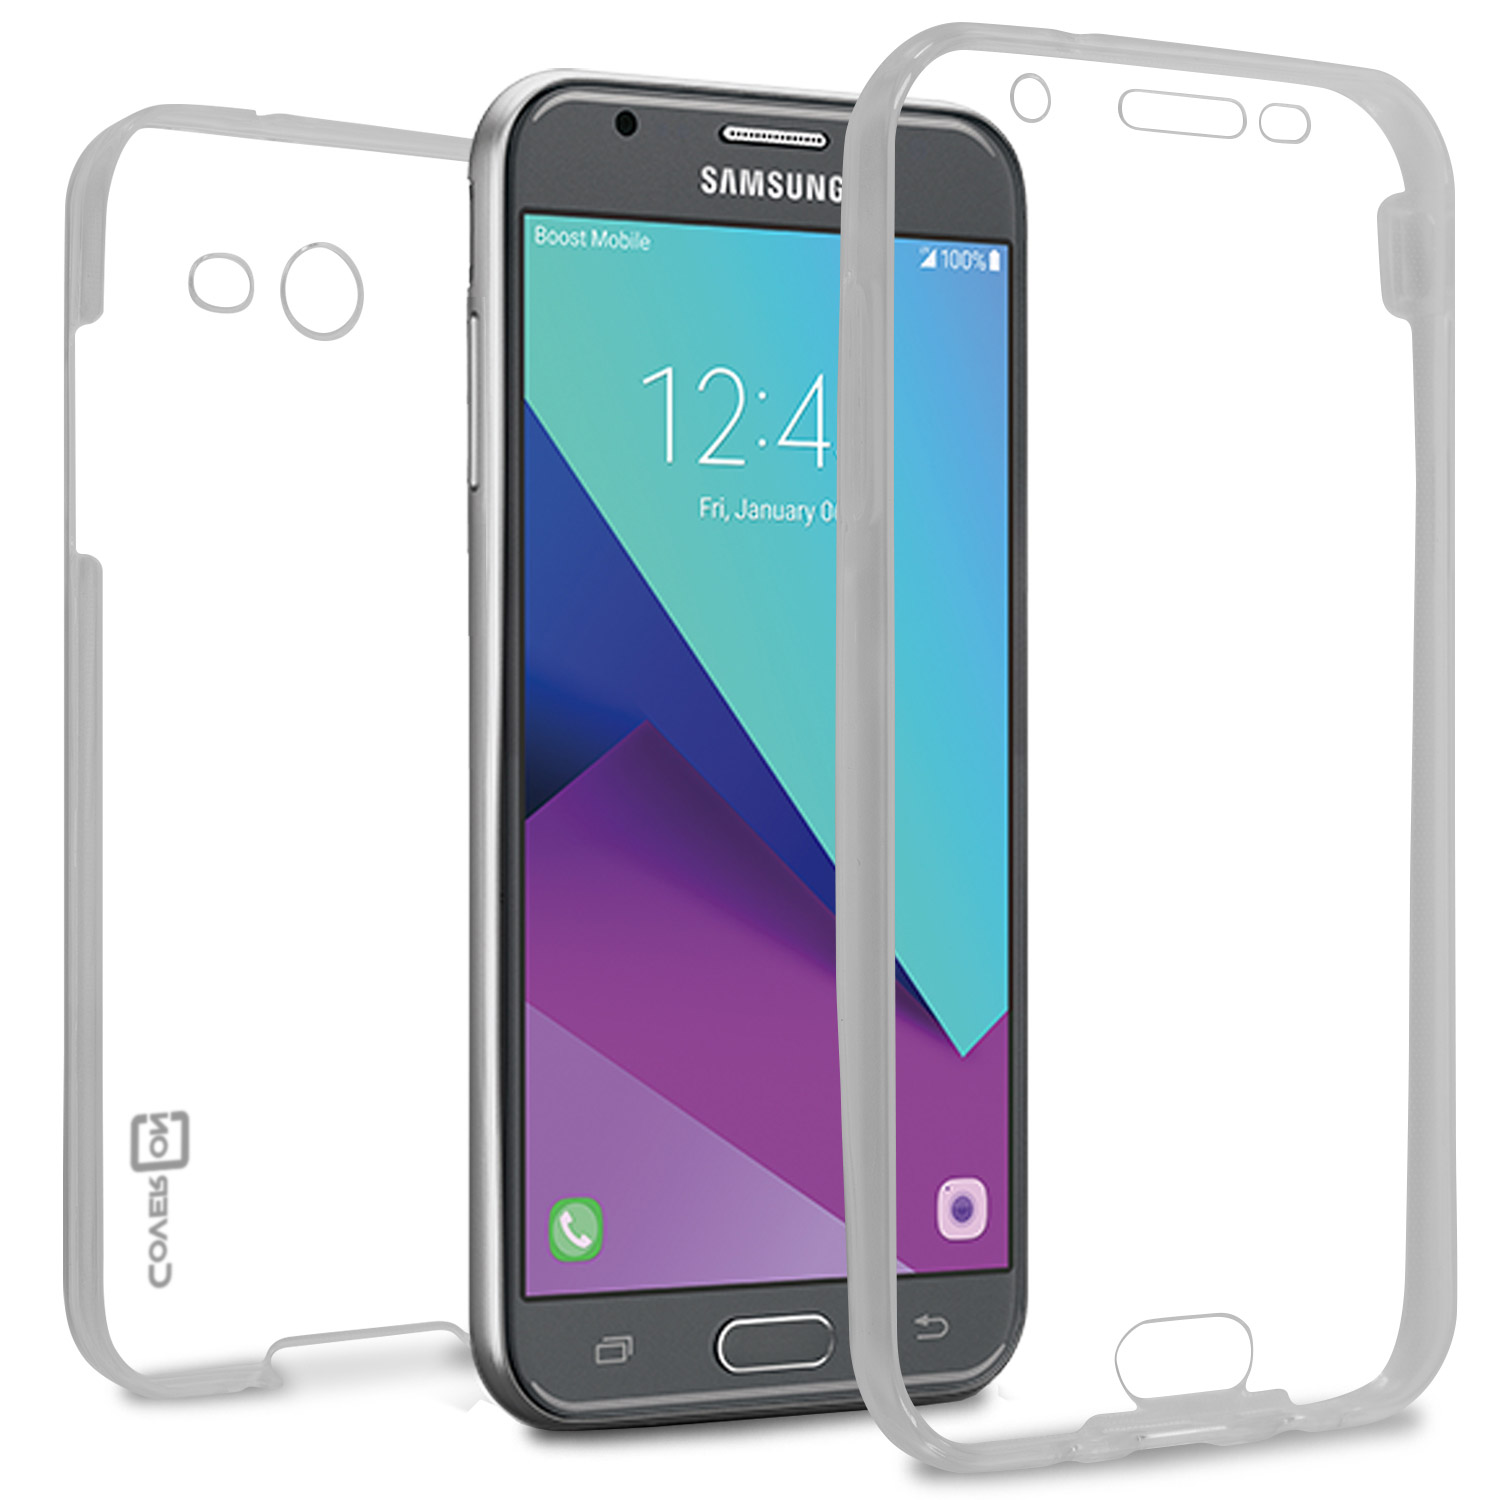 online store 55498 8c5f0 Details about Clear Front & Back Thin Flexible Case For Samsung Galaxy  Express Prime 2 / Sol 2